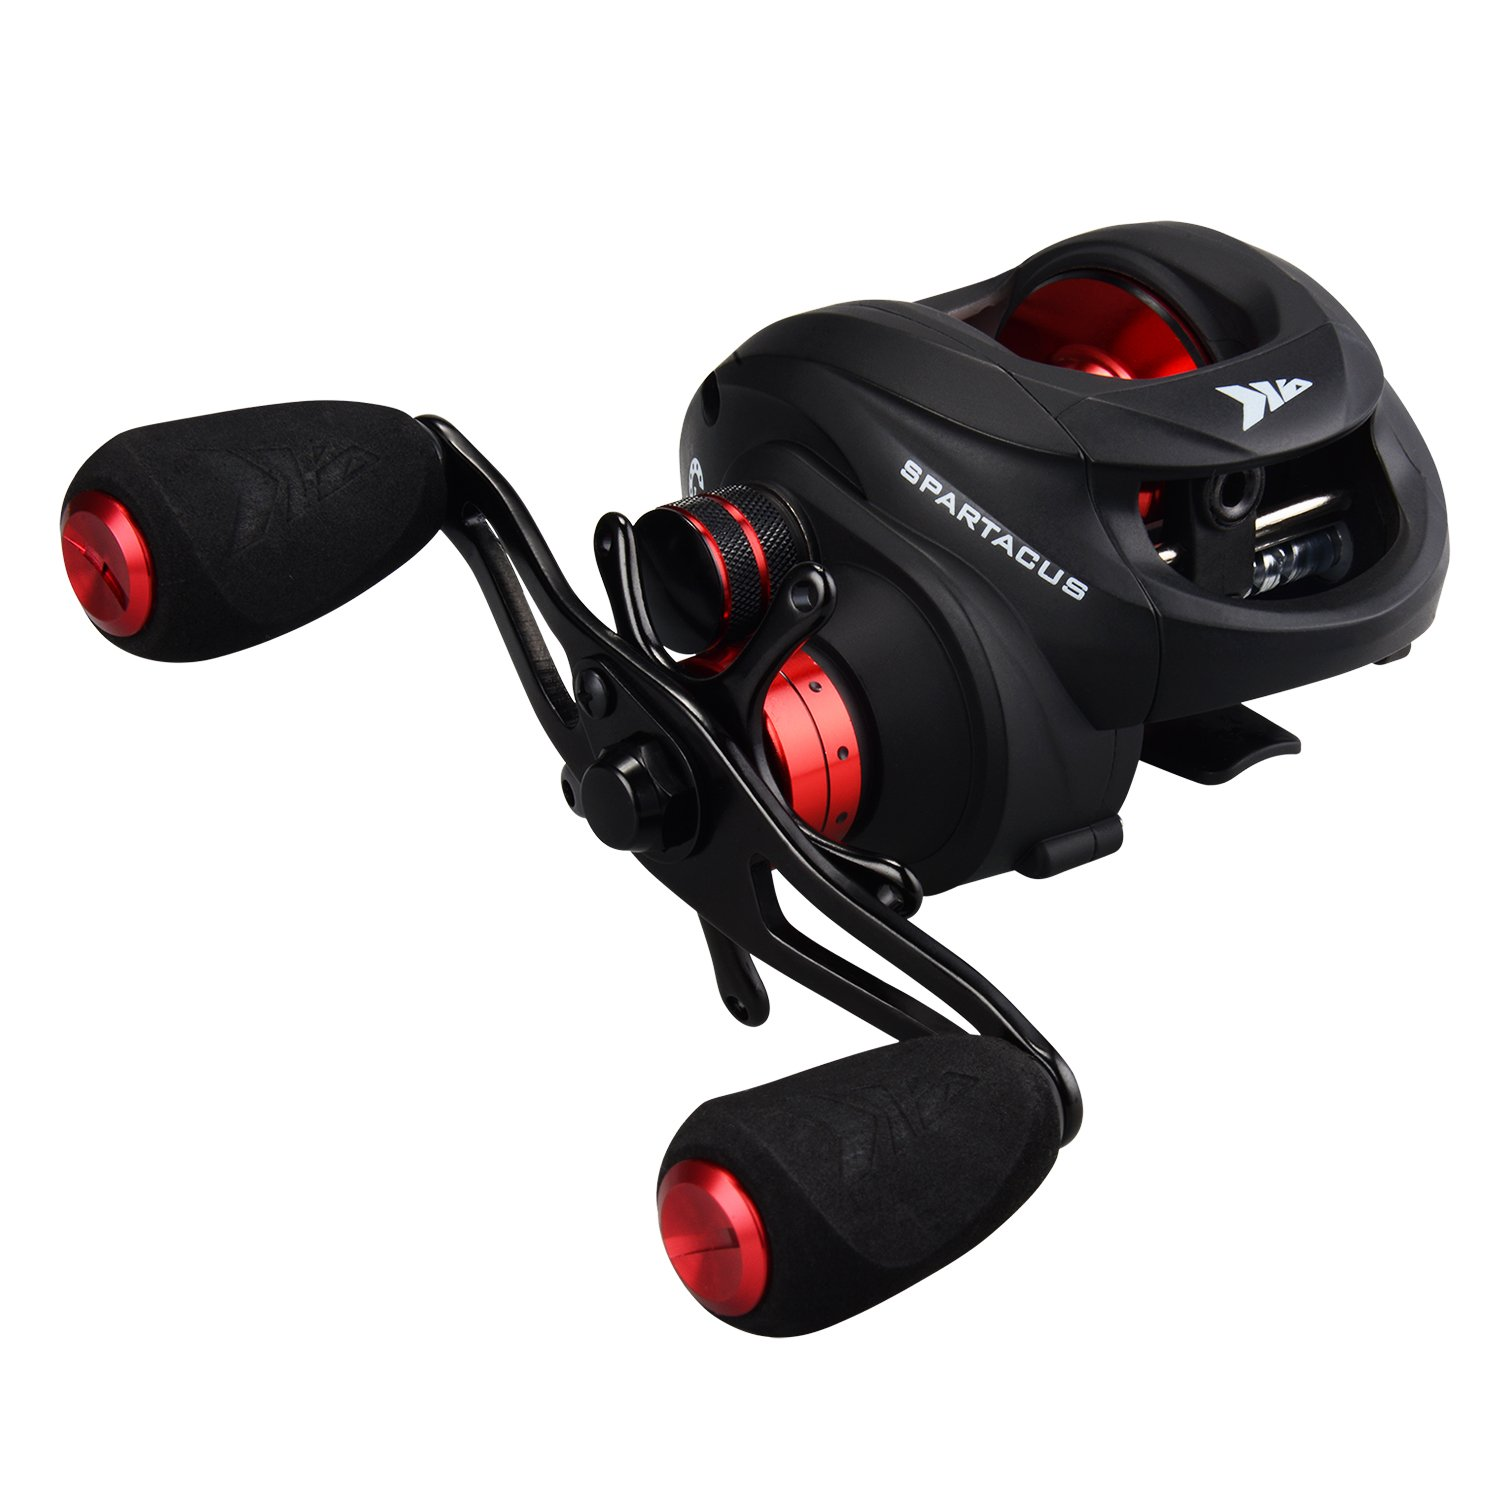 KastKing Spartacus Baitcasting Fishing Reel,Rocket Red,Right Handed Reel by KastKing (Image #1)